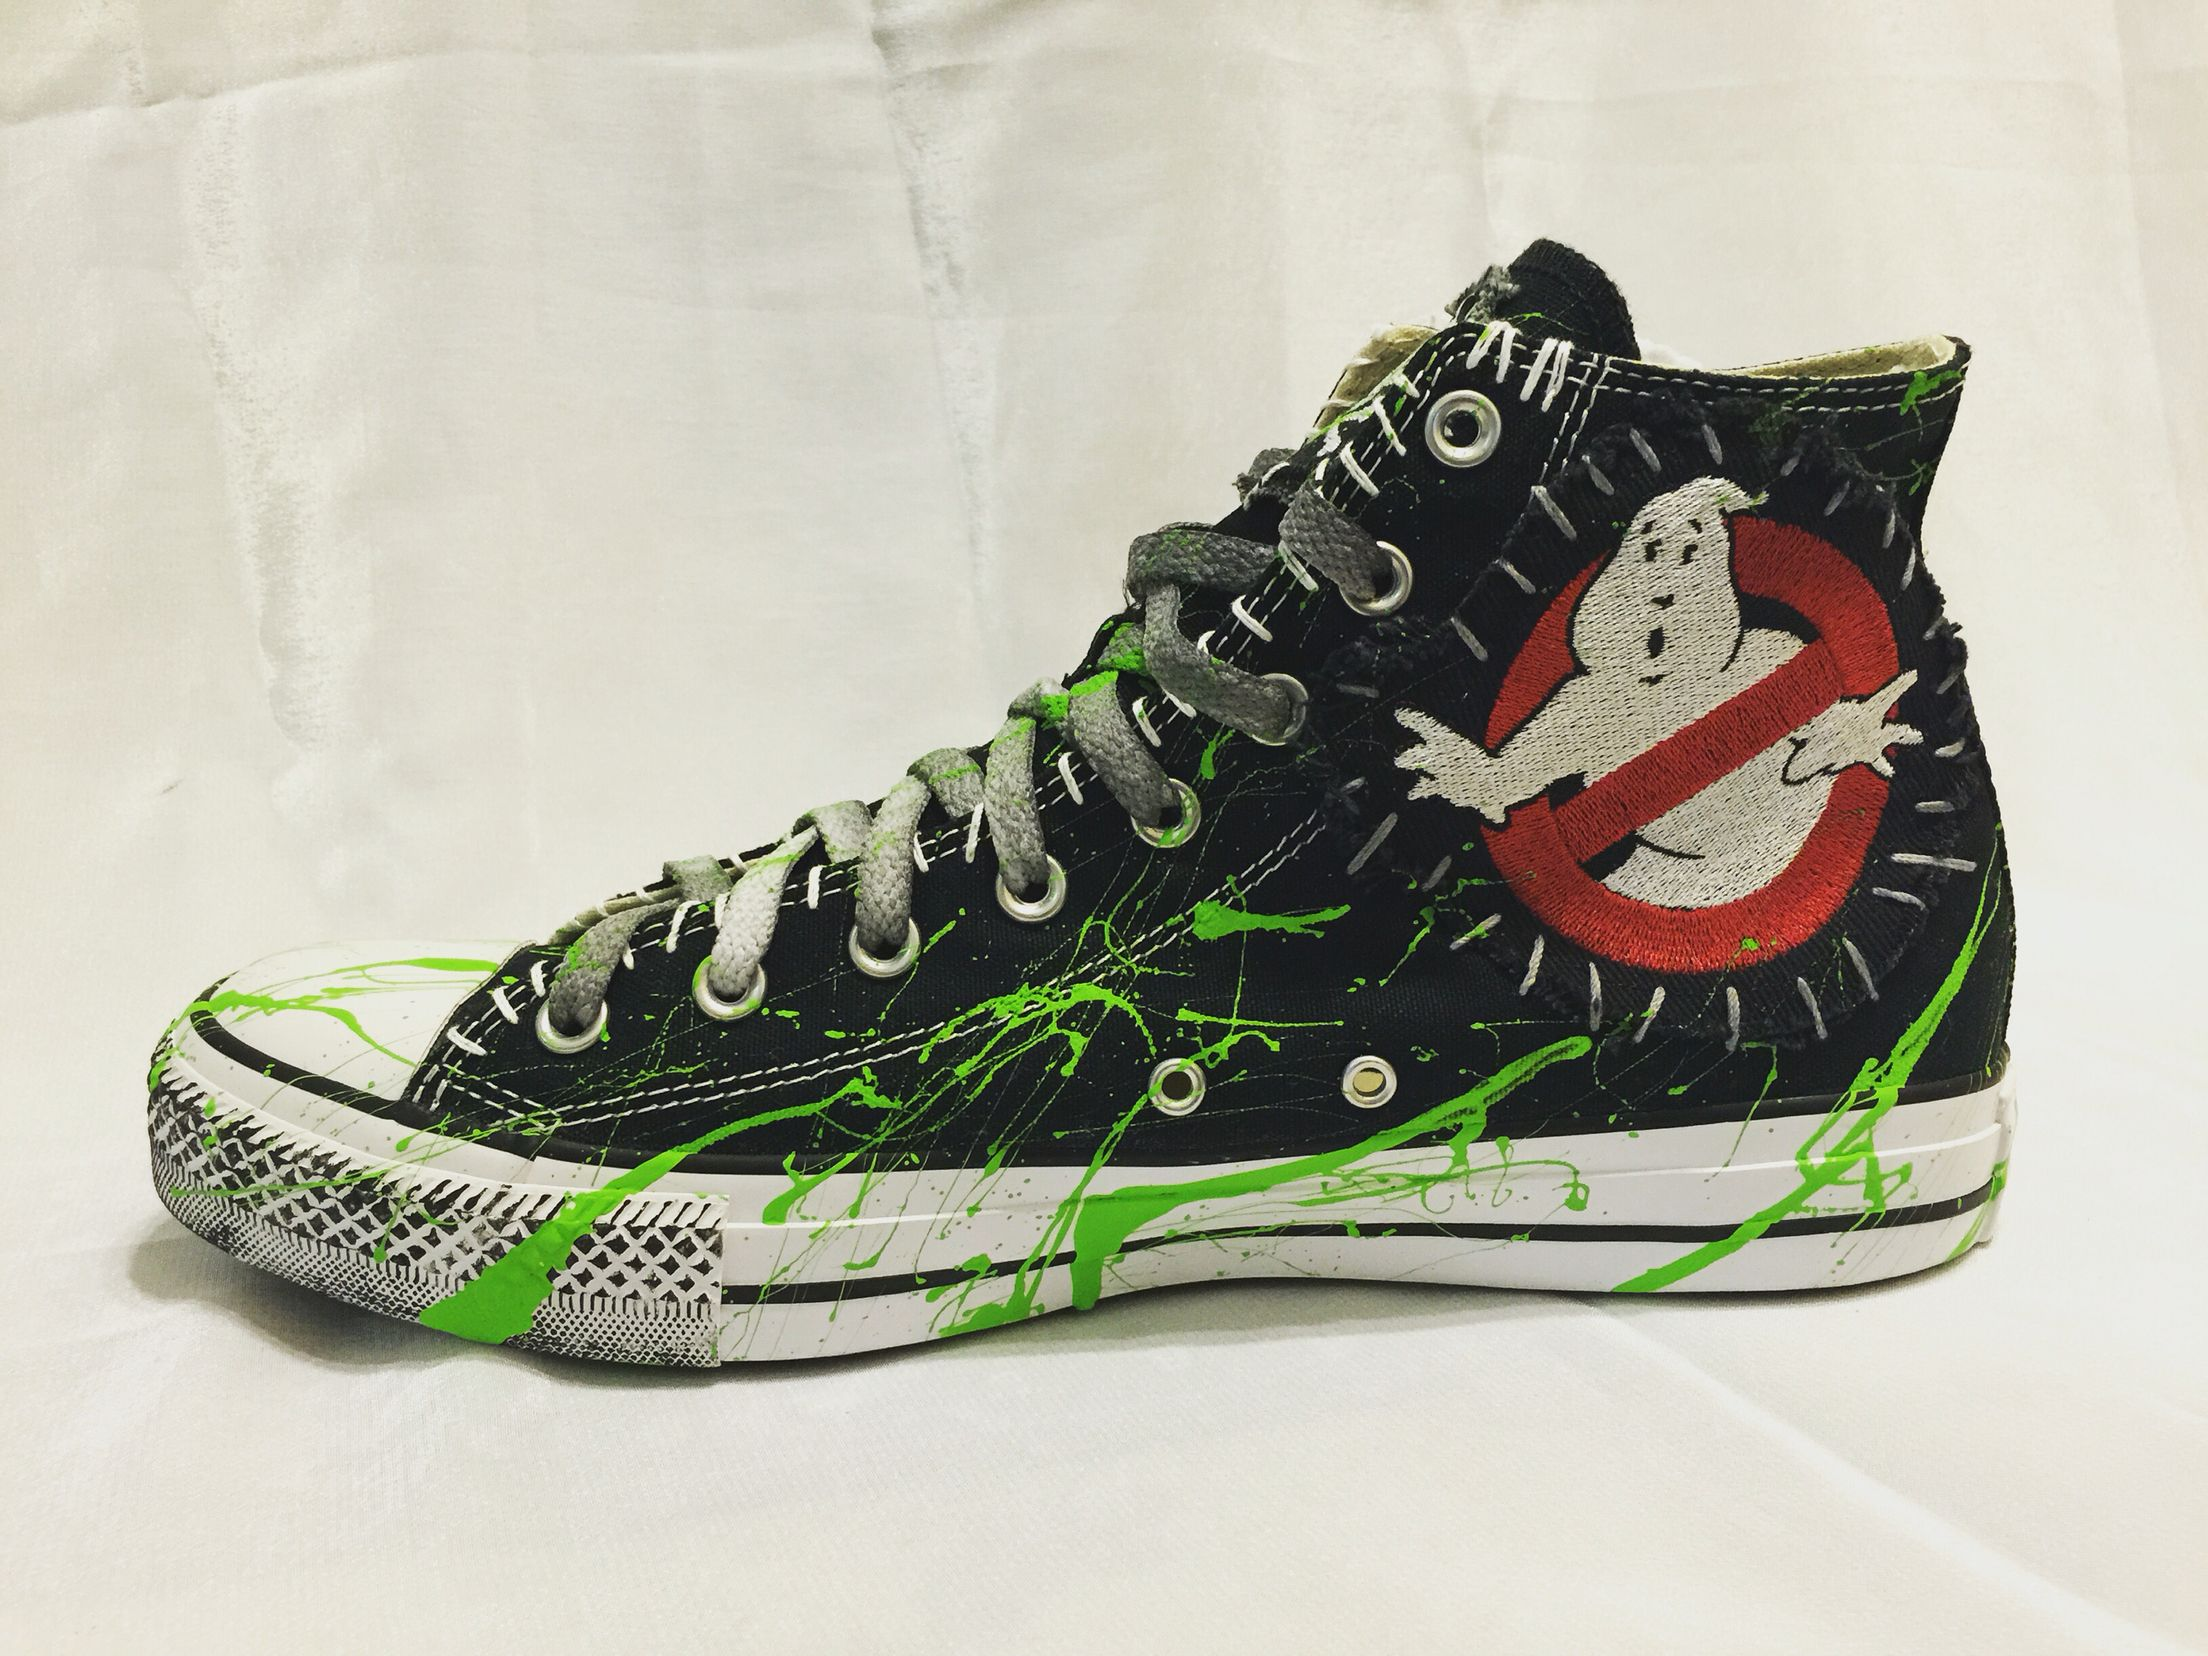 01208232c41ac1 GHOSTBUSTER  All Star  Converse shoes from Chad Cherry Clothing. Horror  icon shoes! Custom shoes!